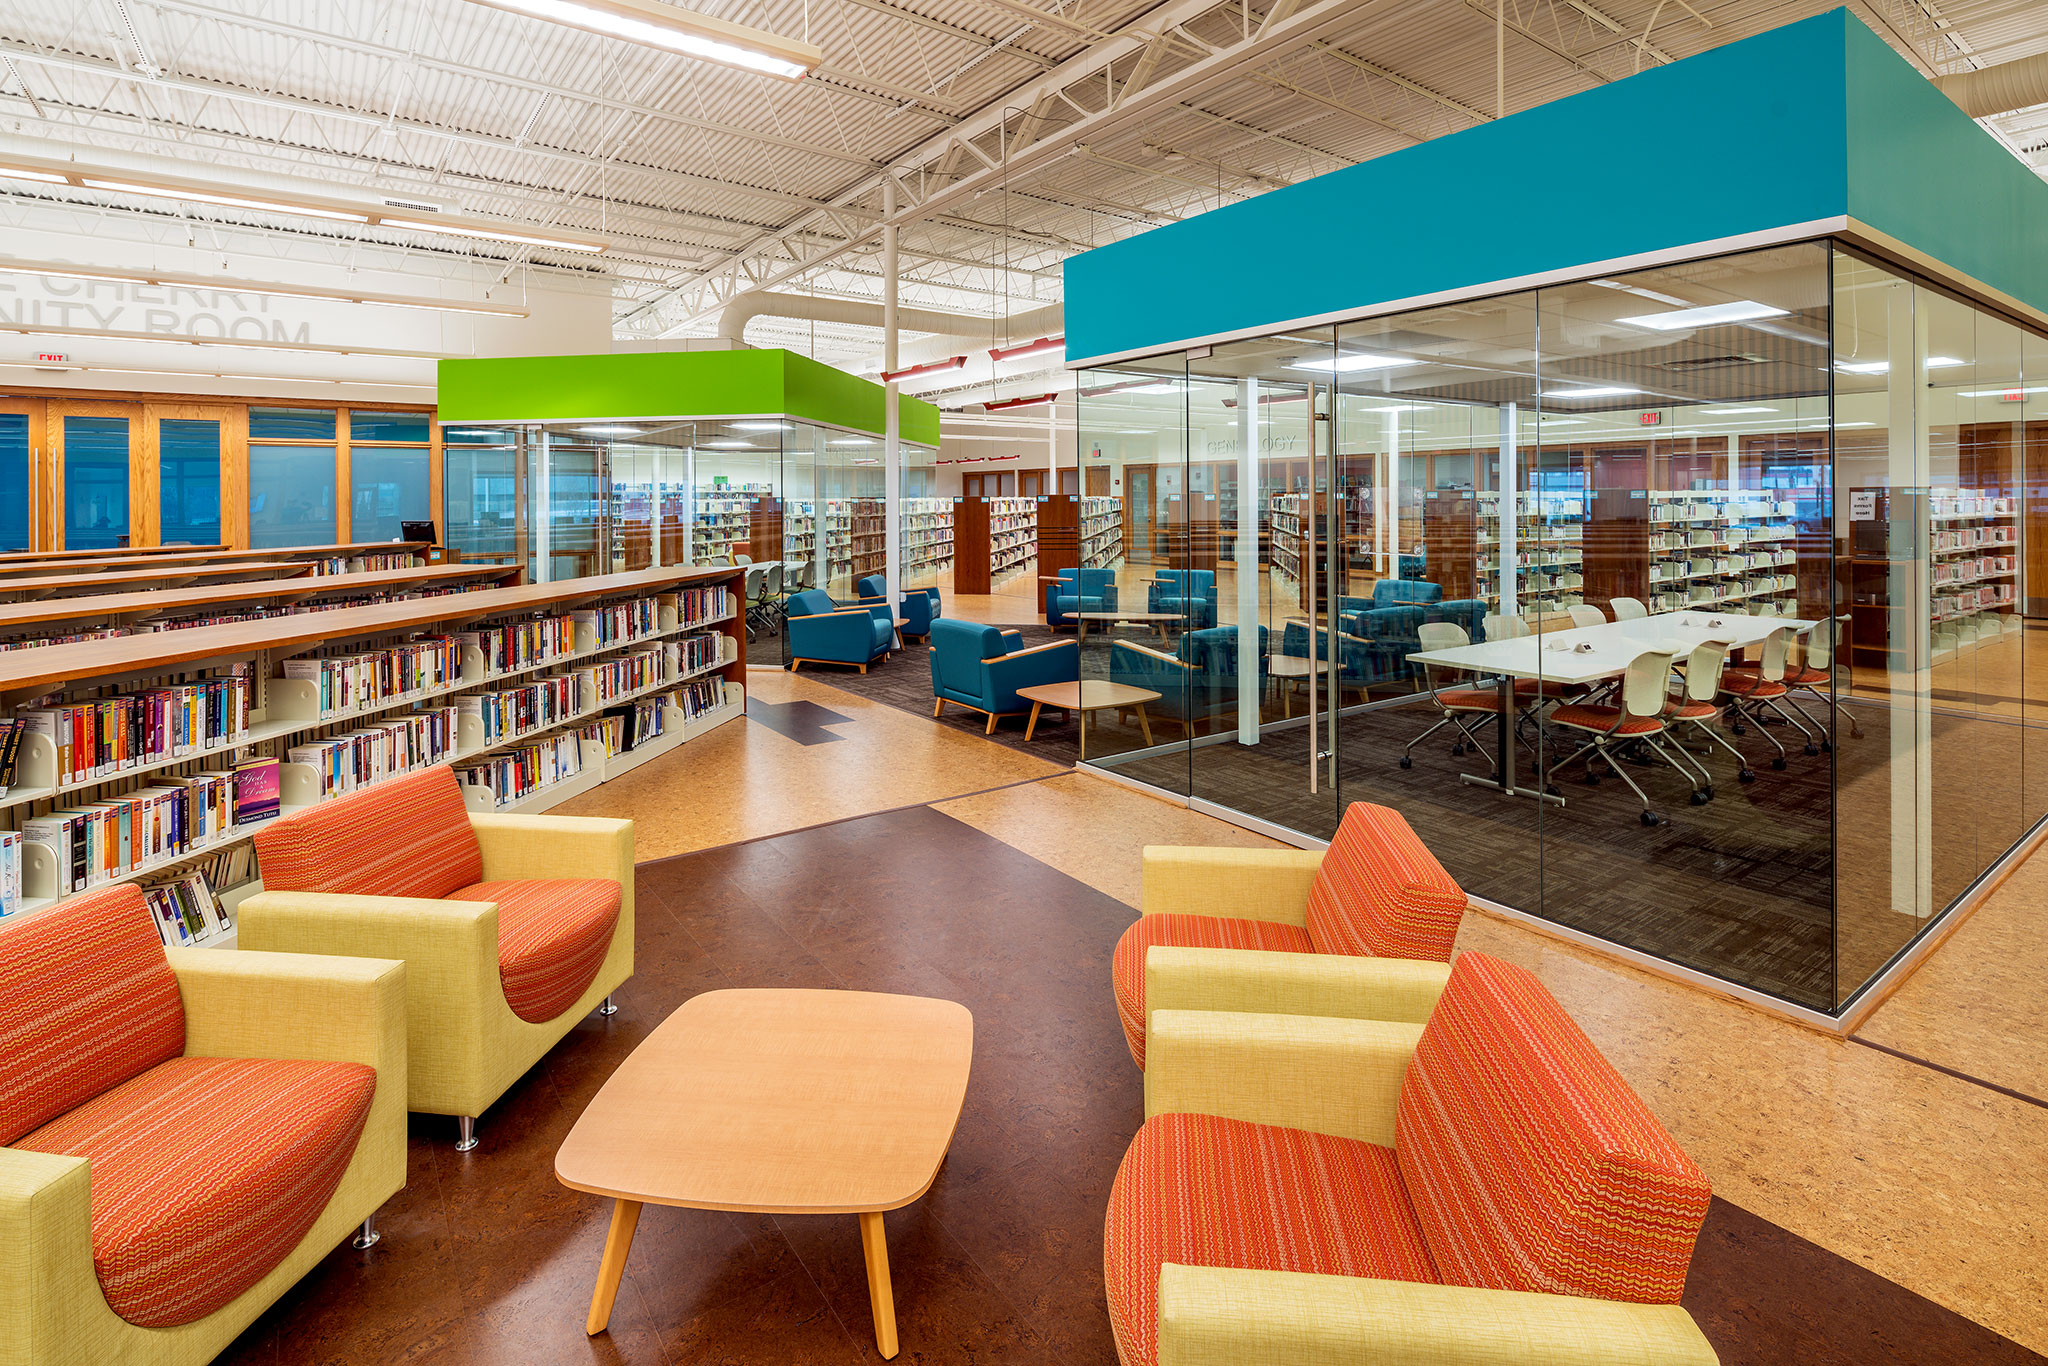 Cabot_libary01_TeaCup_Sela_TOTG_Portico_library_corbett_norristown_experience-center.jpg